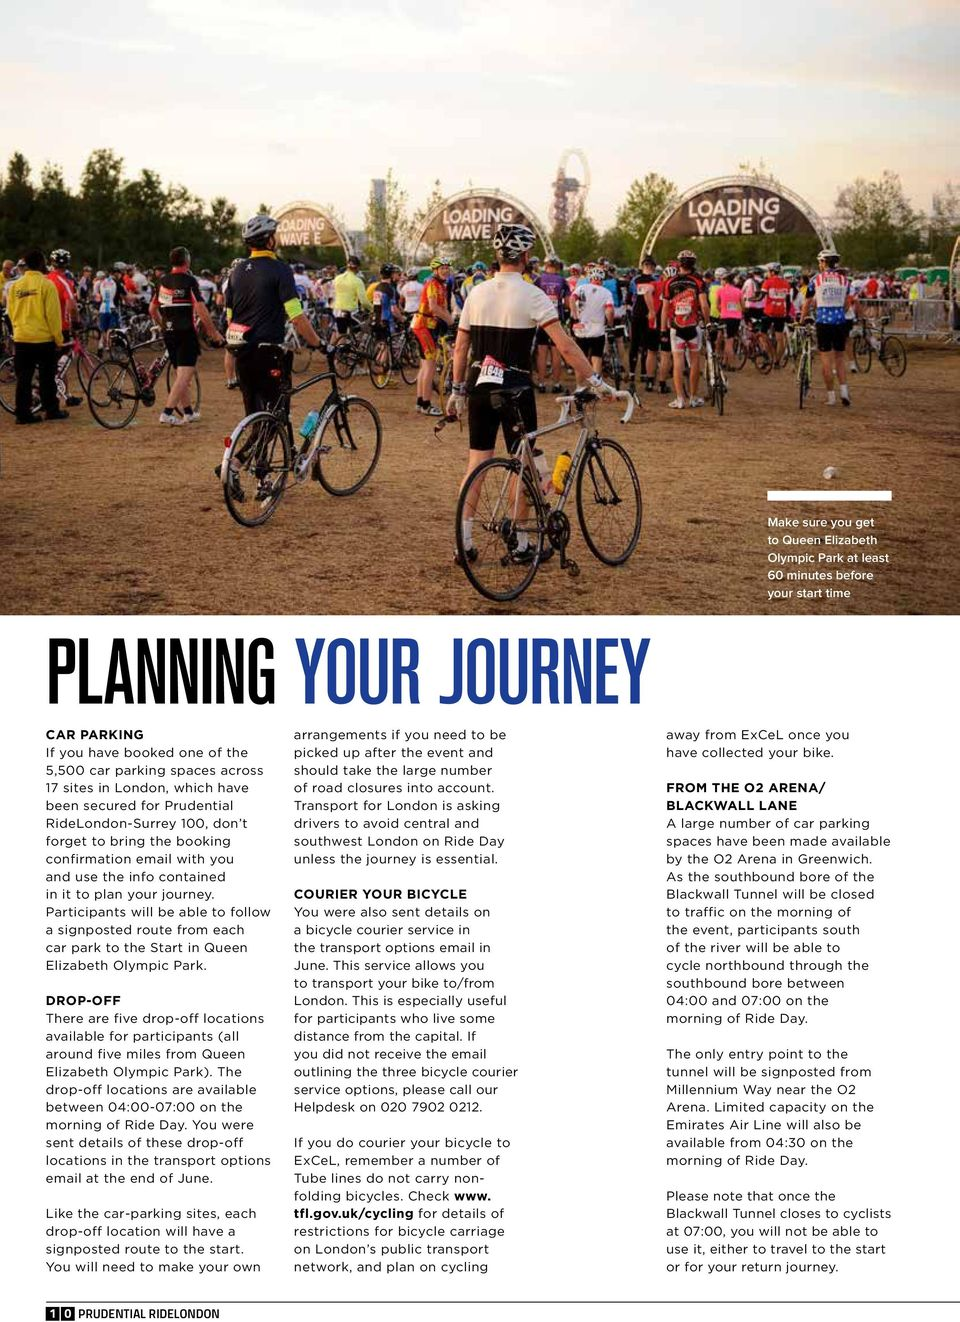 Participants will be able to follow a signposted route from each car park to the Start in Queen Elizabeth Olympic Park.